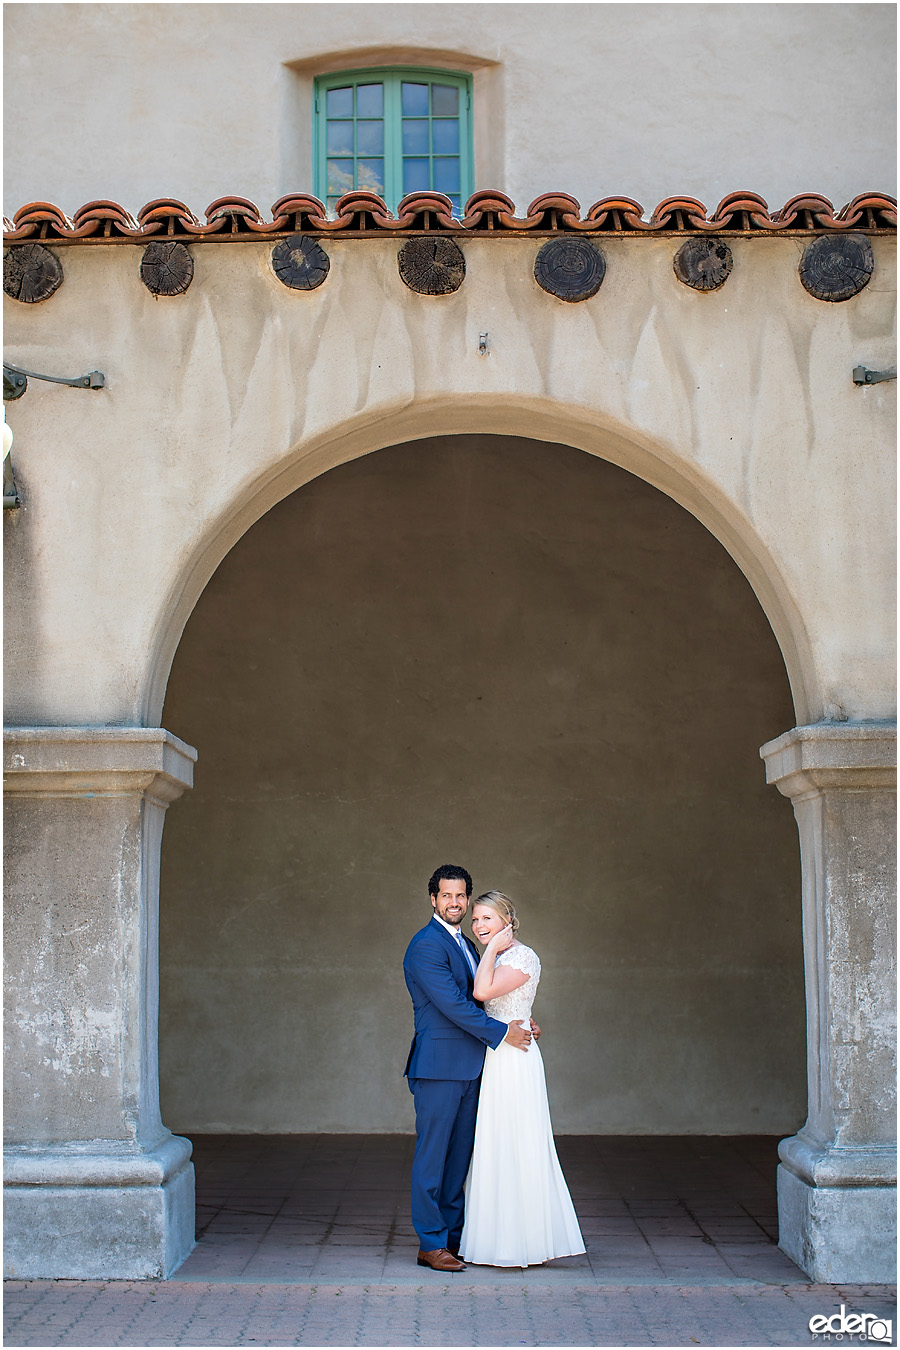 San Diego Elopement couple portrait in Balboa Park.